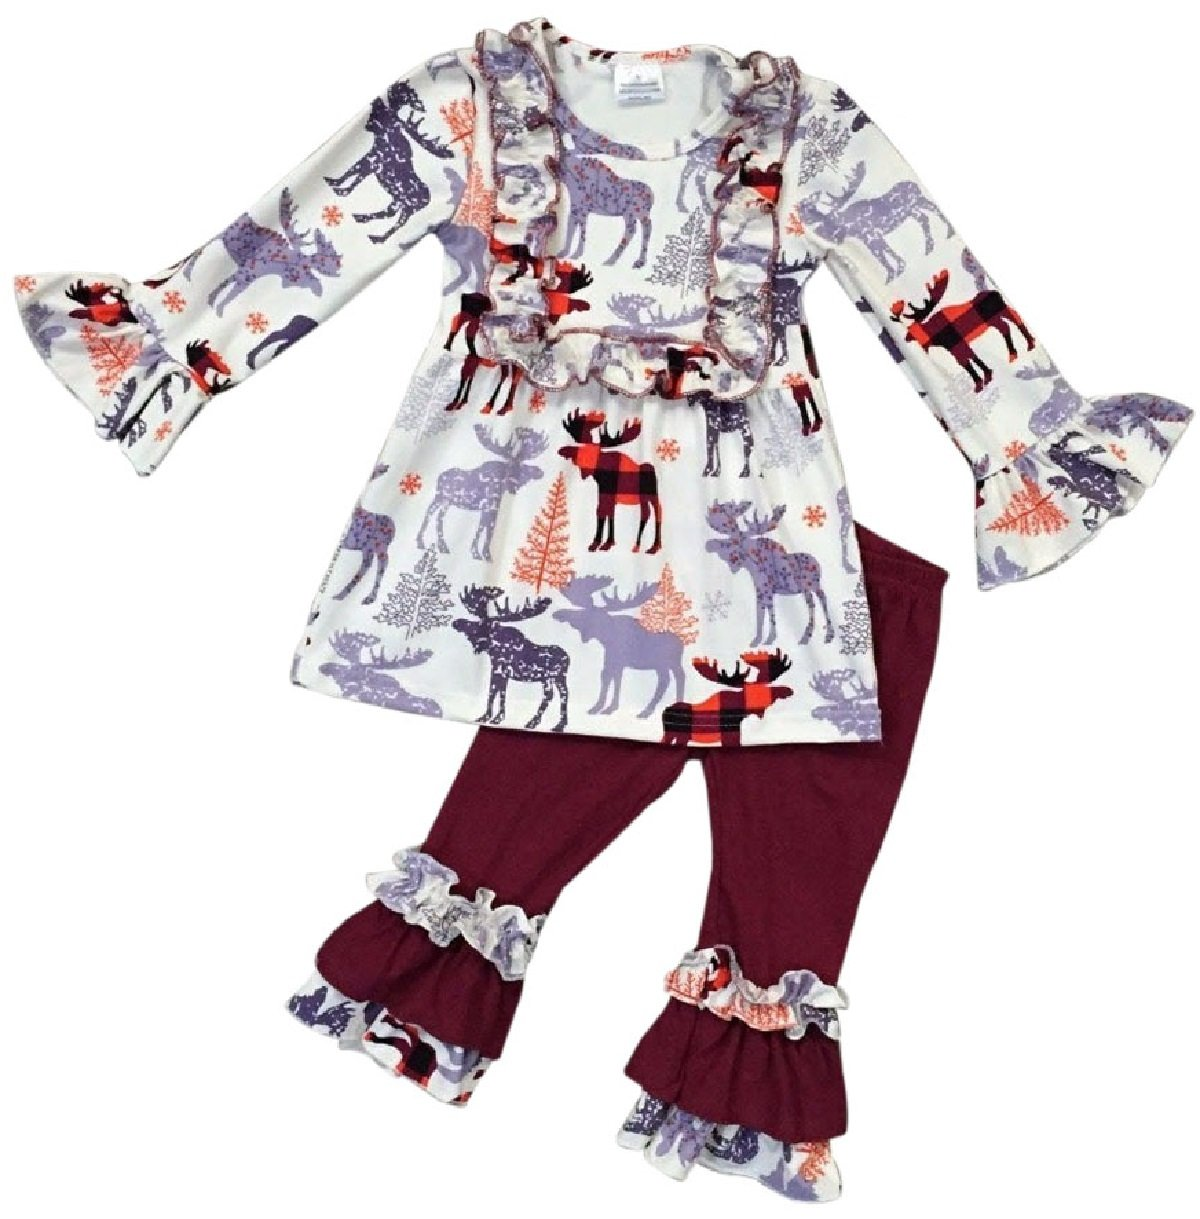 Little Girls 2 Pieces Dress Set Reindeer Ruffle Dress Legging Pant Clothing Set Off White 3T S (201148) by BluNight Collection (Image #1)